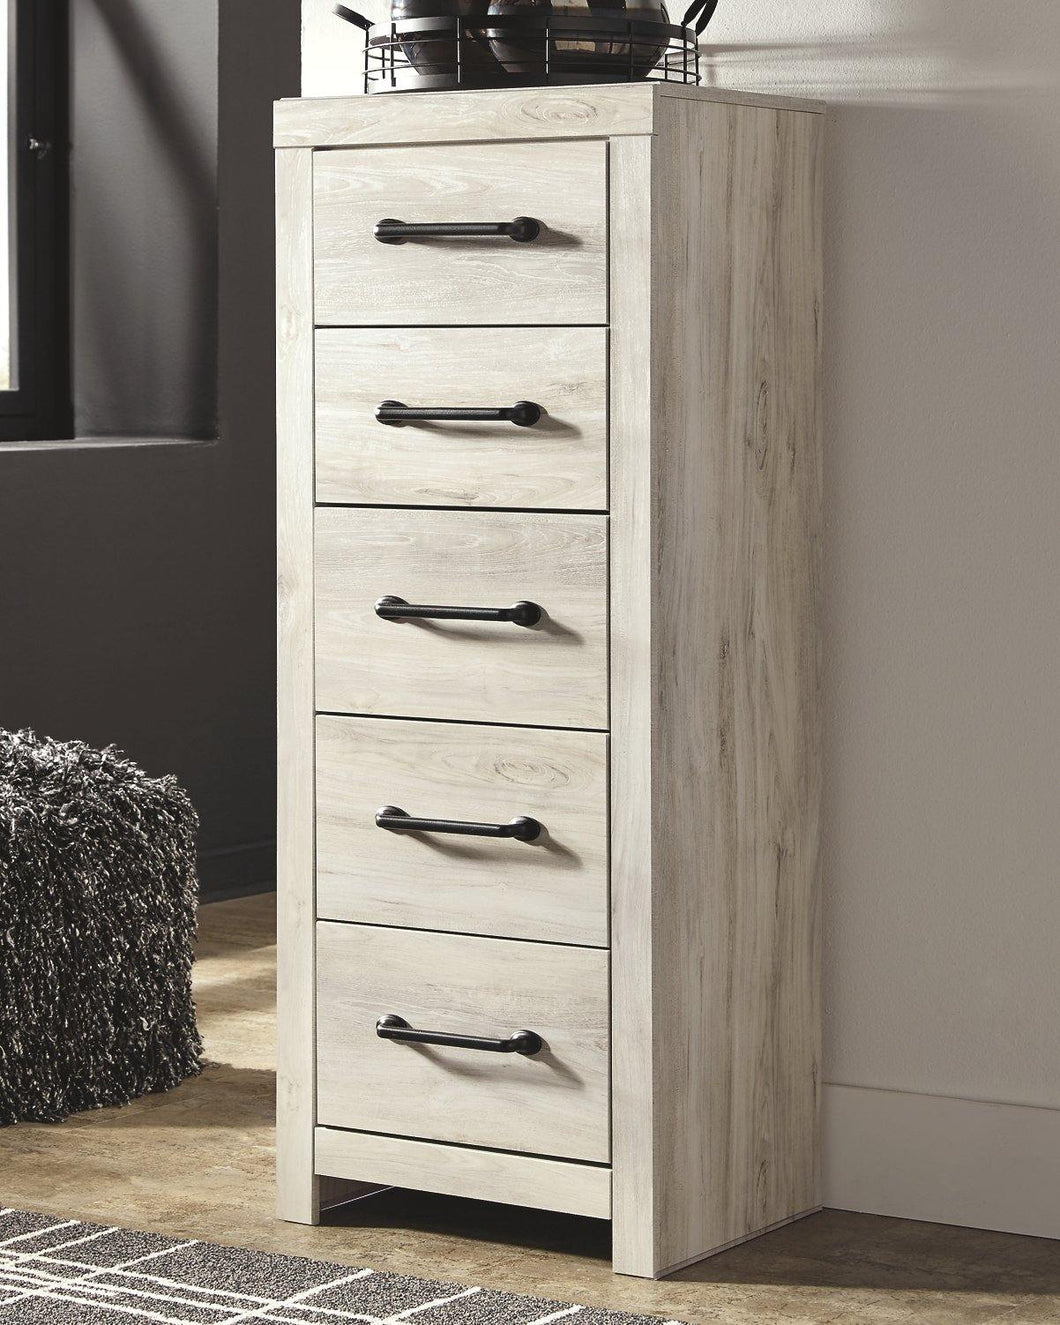 Cambeck Narrow Chest of Drawers B192-11 Girls Bedroom Furniture By Ashley Furniture from sofafair